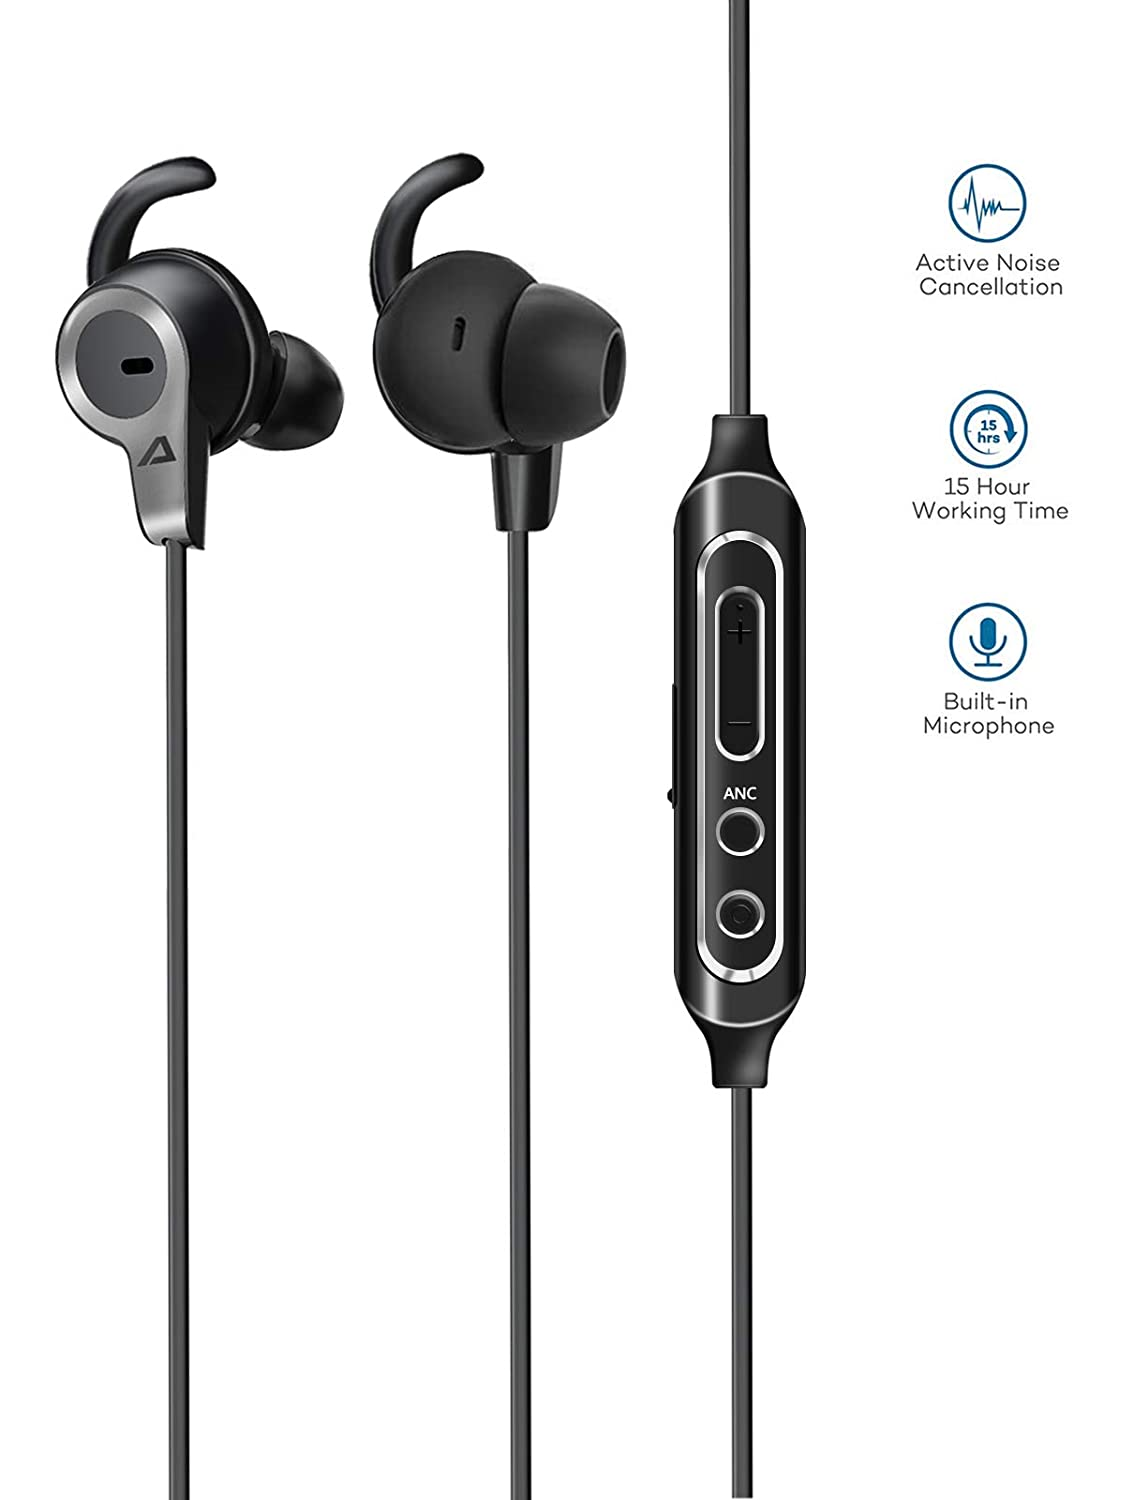 Neckband Bluetooth Headphones, ABLEGRID MKolar ANC Active Noise Cancelling Wireless Sports Headphones with 15 Hour Playtime, Magnetic Clip, IPX5 CVC 6.0 MEMS Mic MKolar